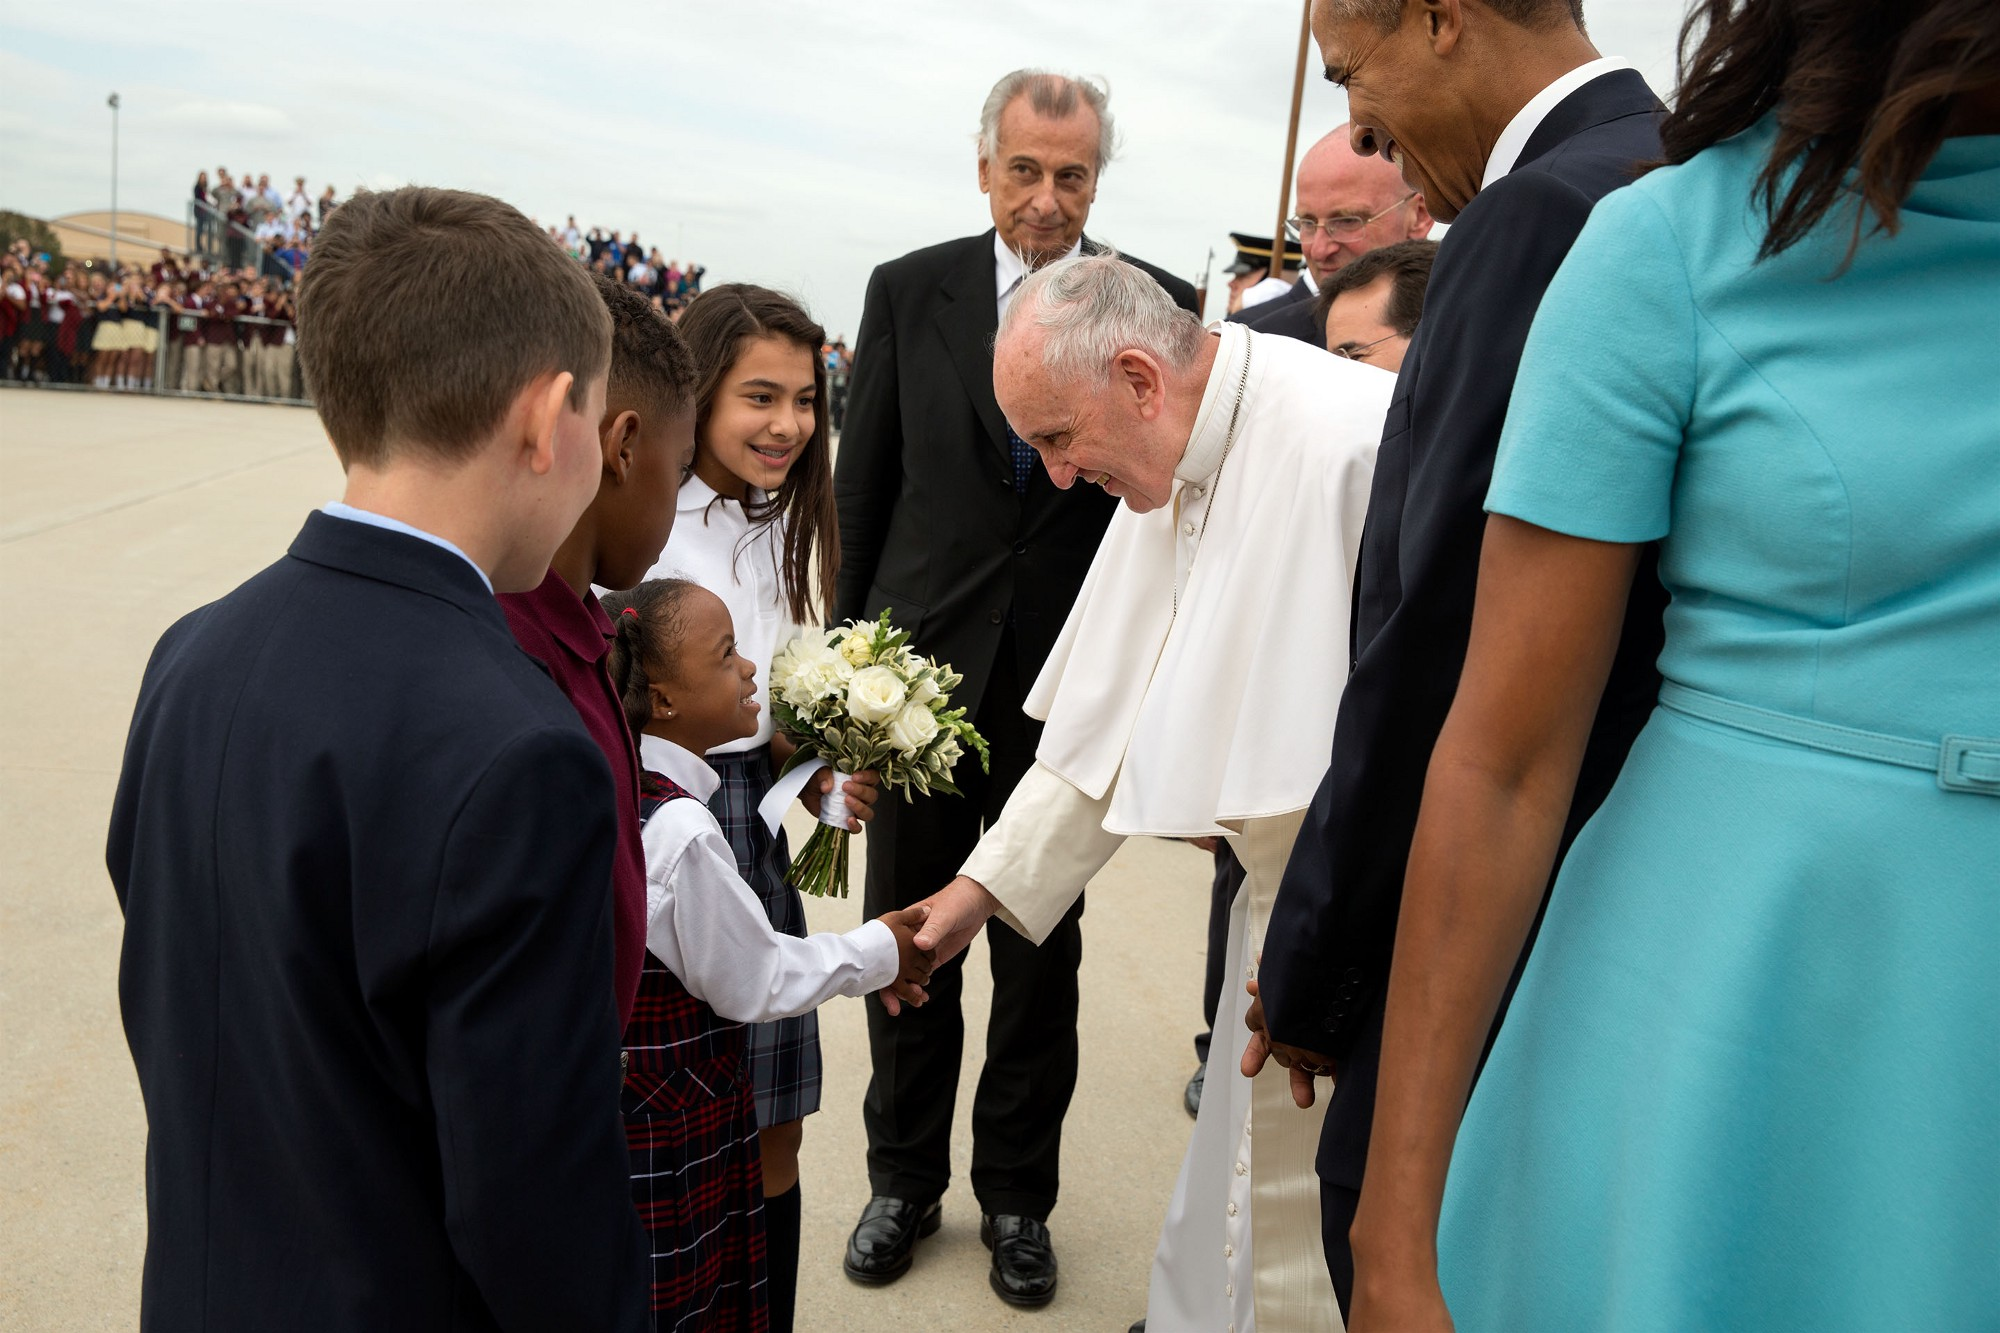 Pope Francis greets Catholic school children. (Official White House Photo by Pete Souza)